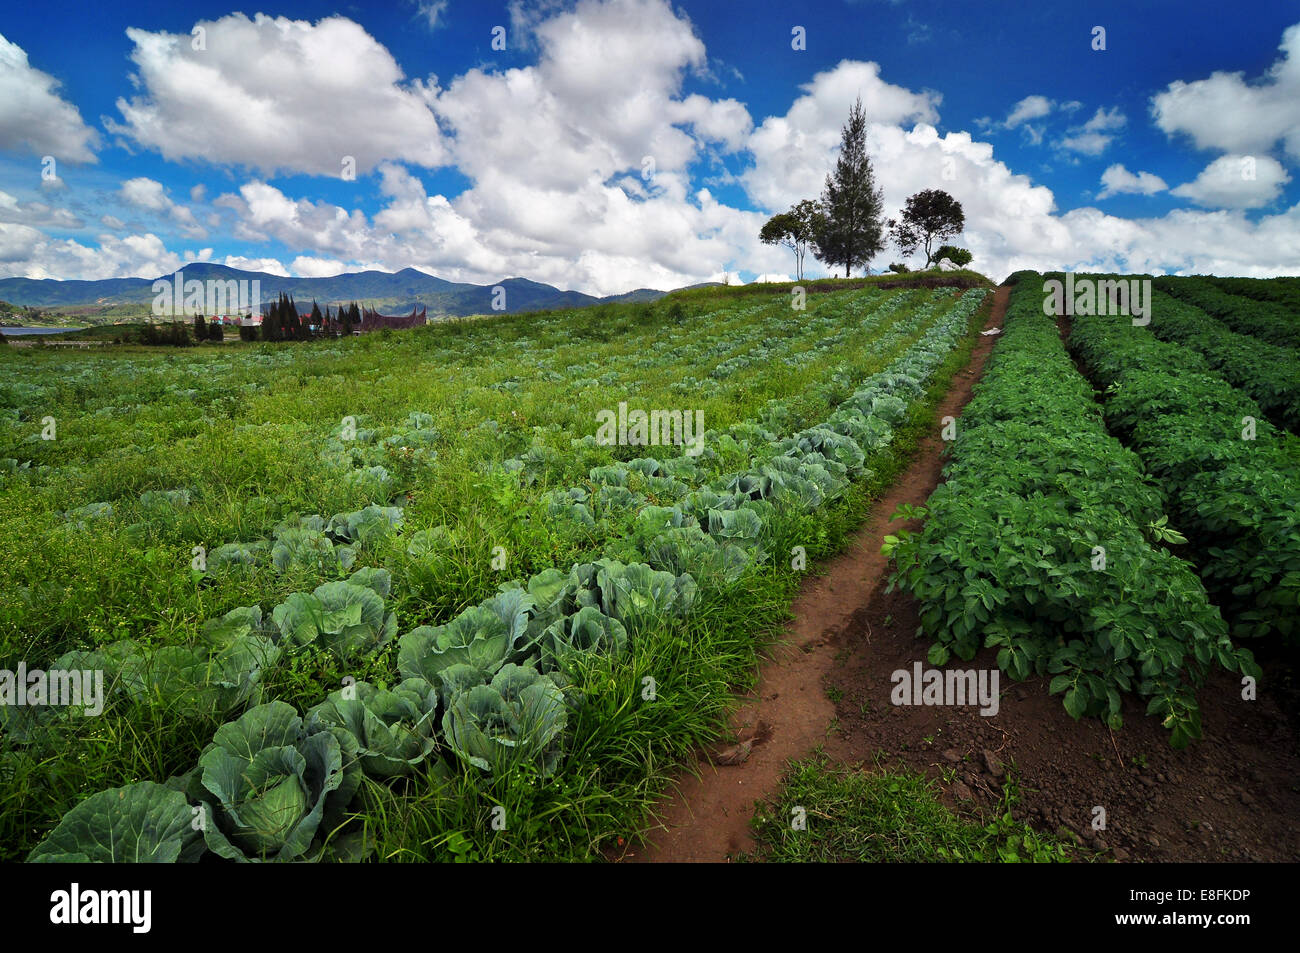 Indonesia, West Sumatra, Nagari Timbulun, Alahan Panjang, View of field - Stock Image